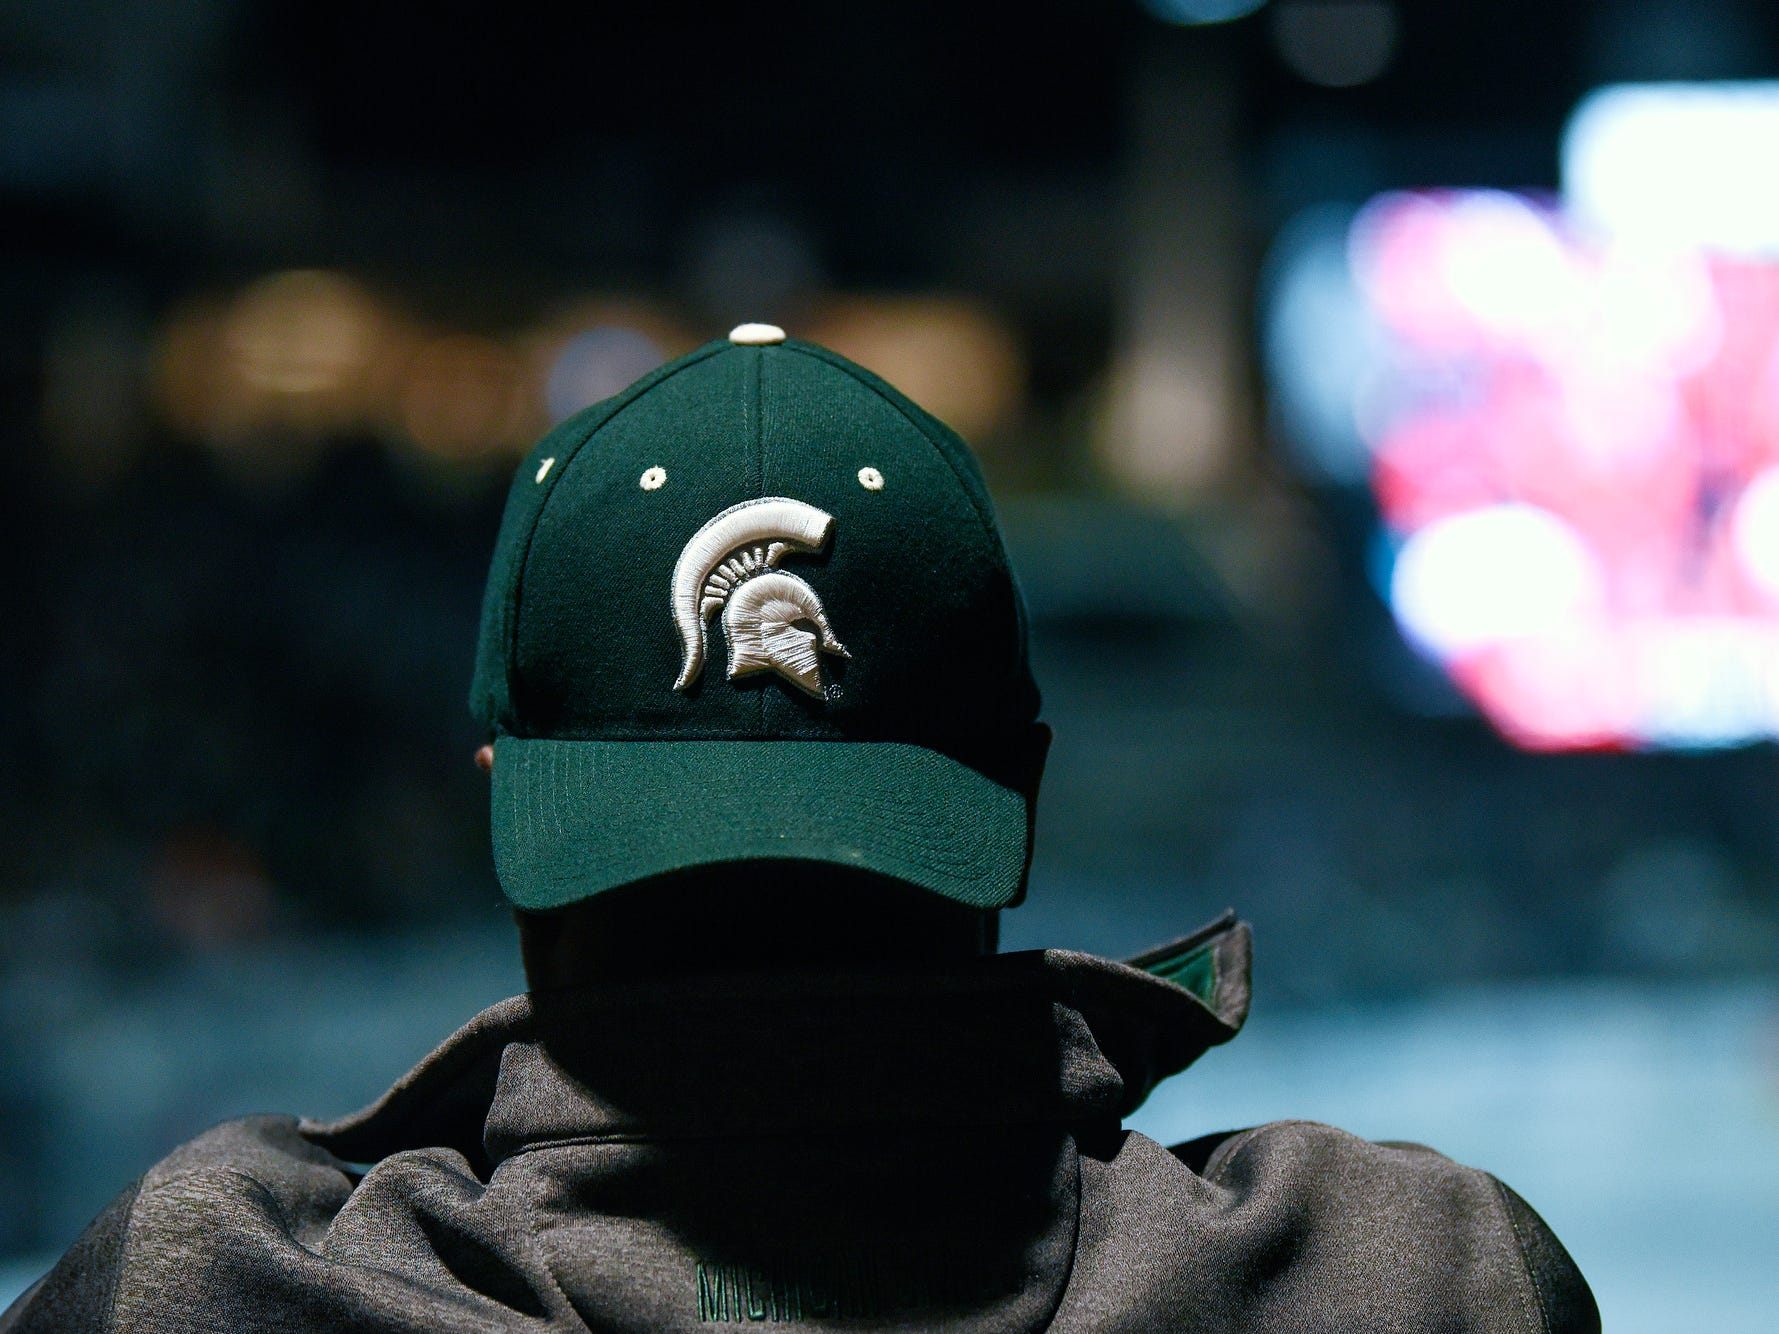 A fan watches the second half of the Michigan State Spartans' Final Four game against Texas Tech on Saturday, April 6, 2019, at a watch party at Munn Ice Arena in East Lansing.